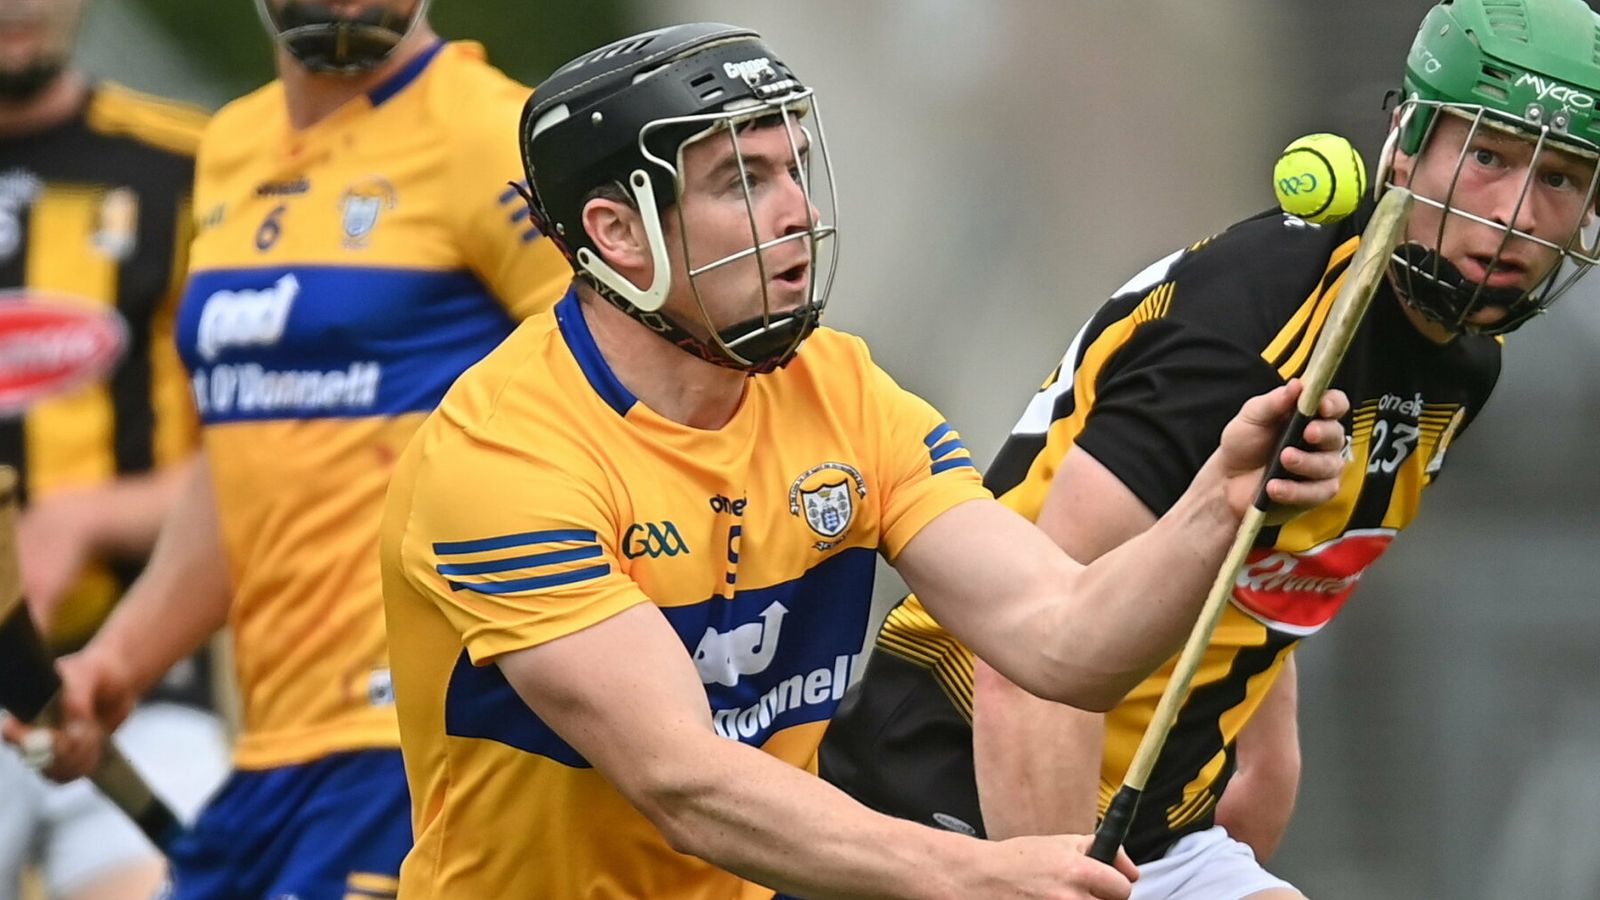 Jamesie O'Connor: Clare have a real chance against Waterford, something that did not look likely last month